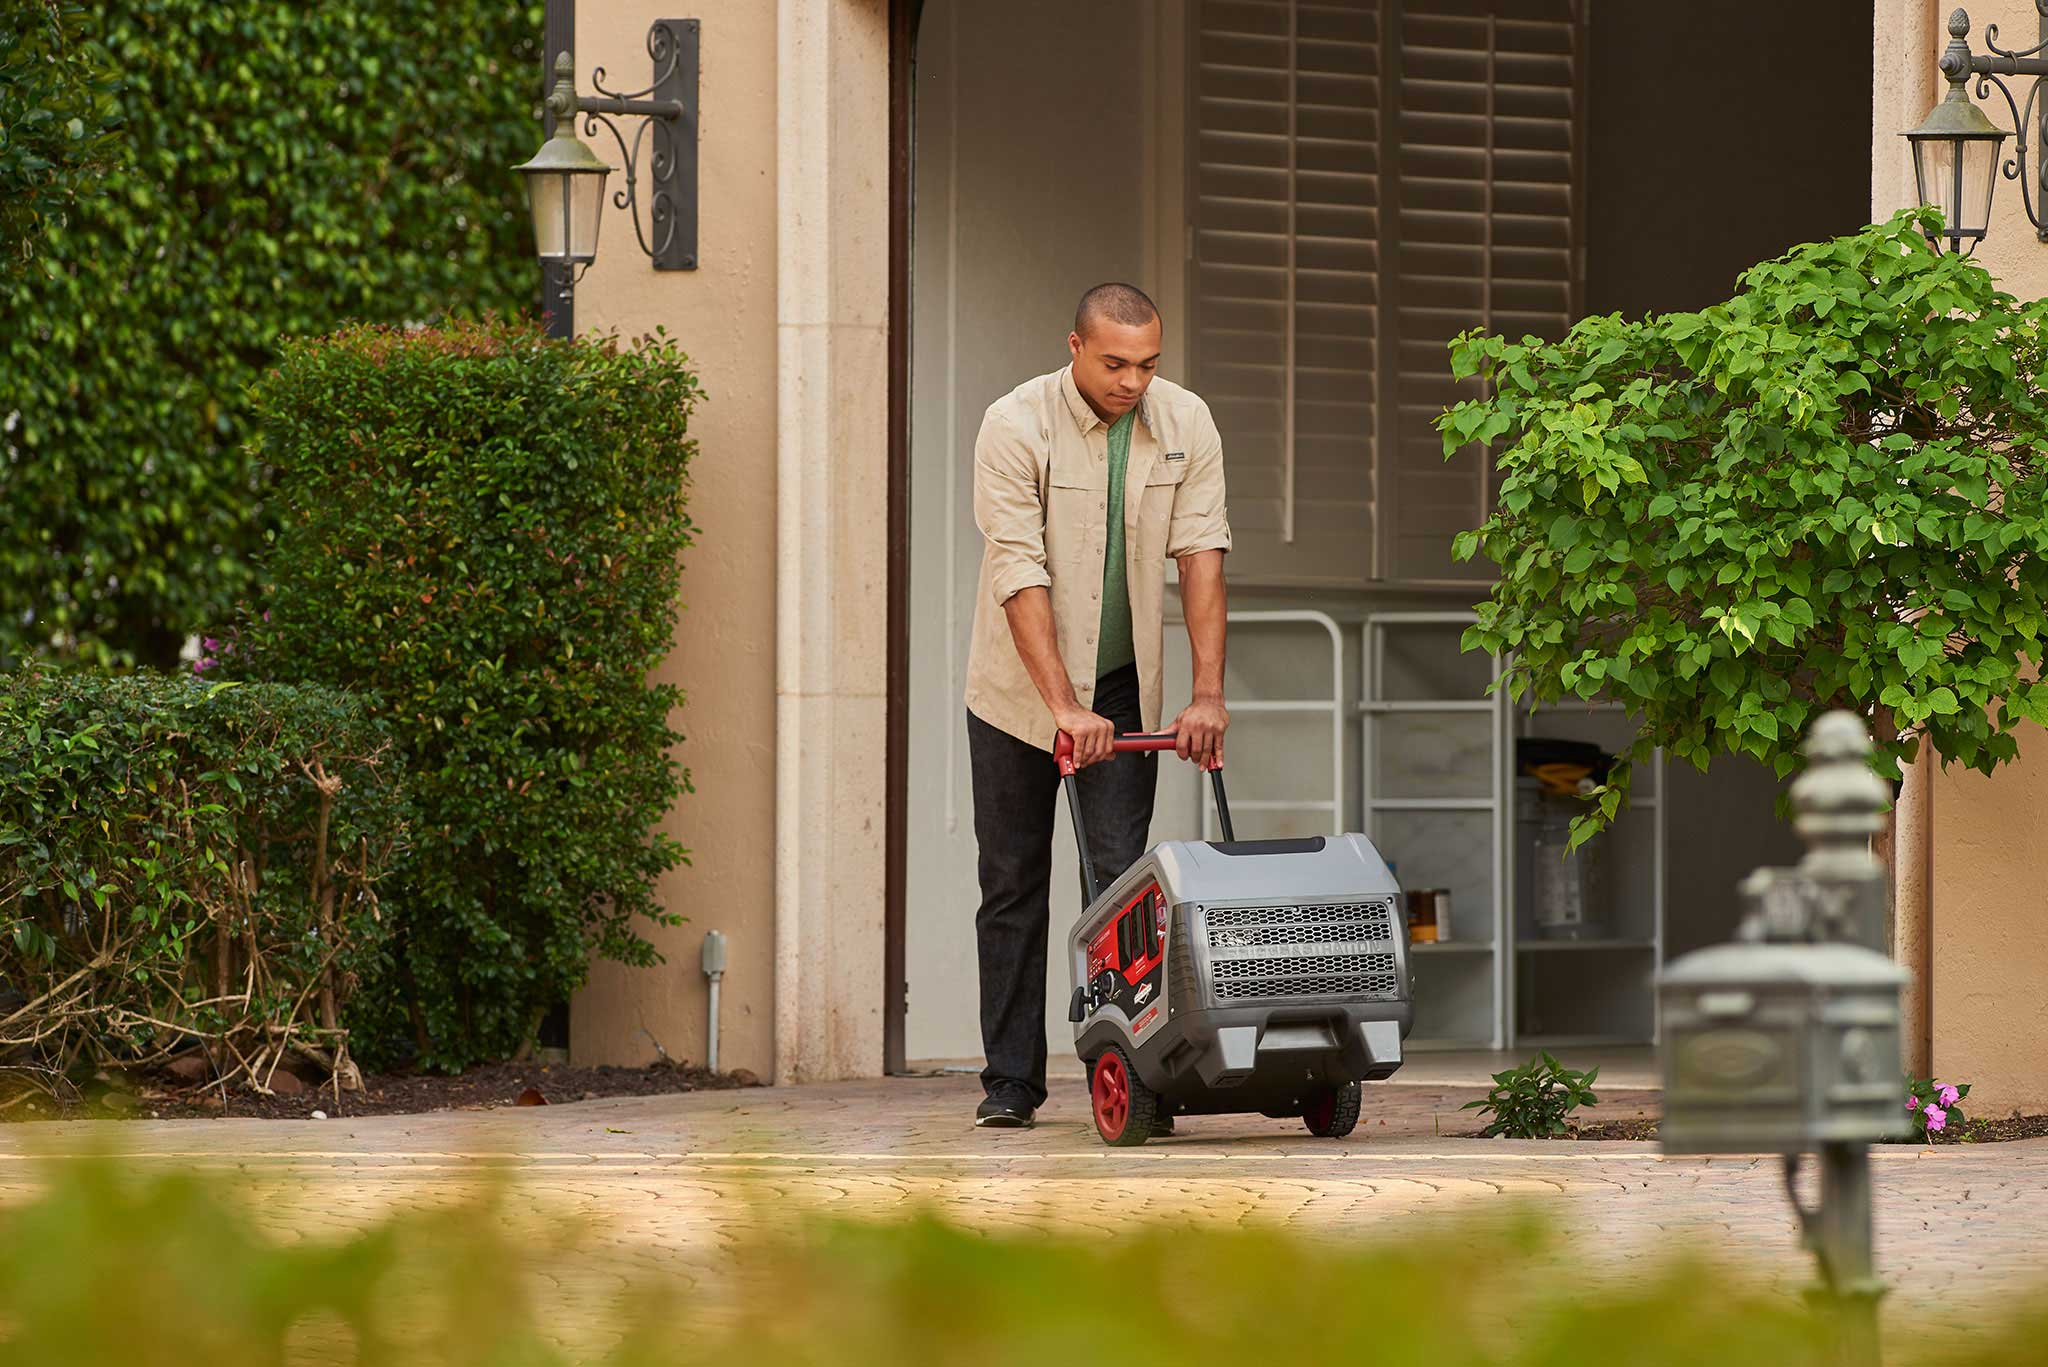 With a telescopic handle and design that's 45% more compact and 30% lighter than standard generators, Briggs & Stratton's new Q6500 QuietPower™ Series inverter generator is easy to maneuver and store.